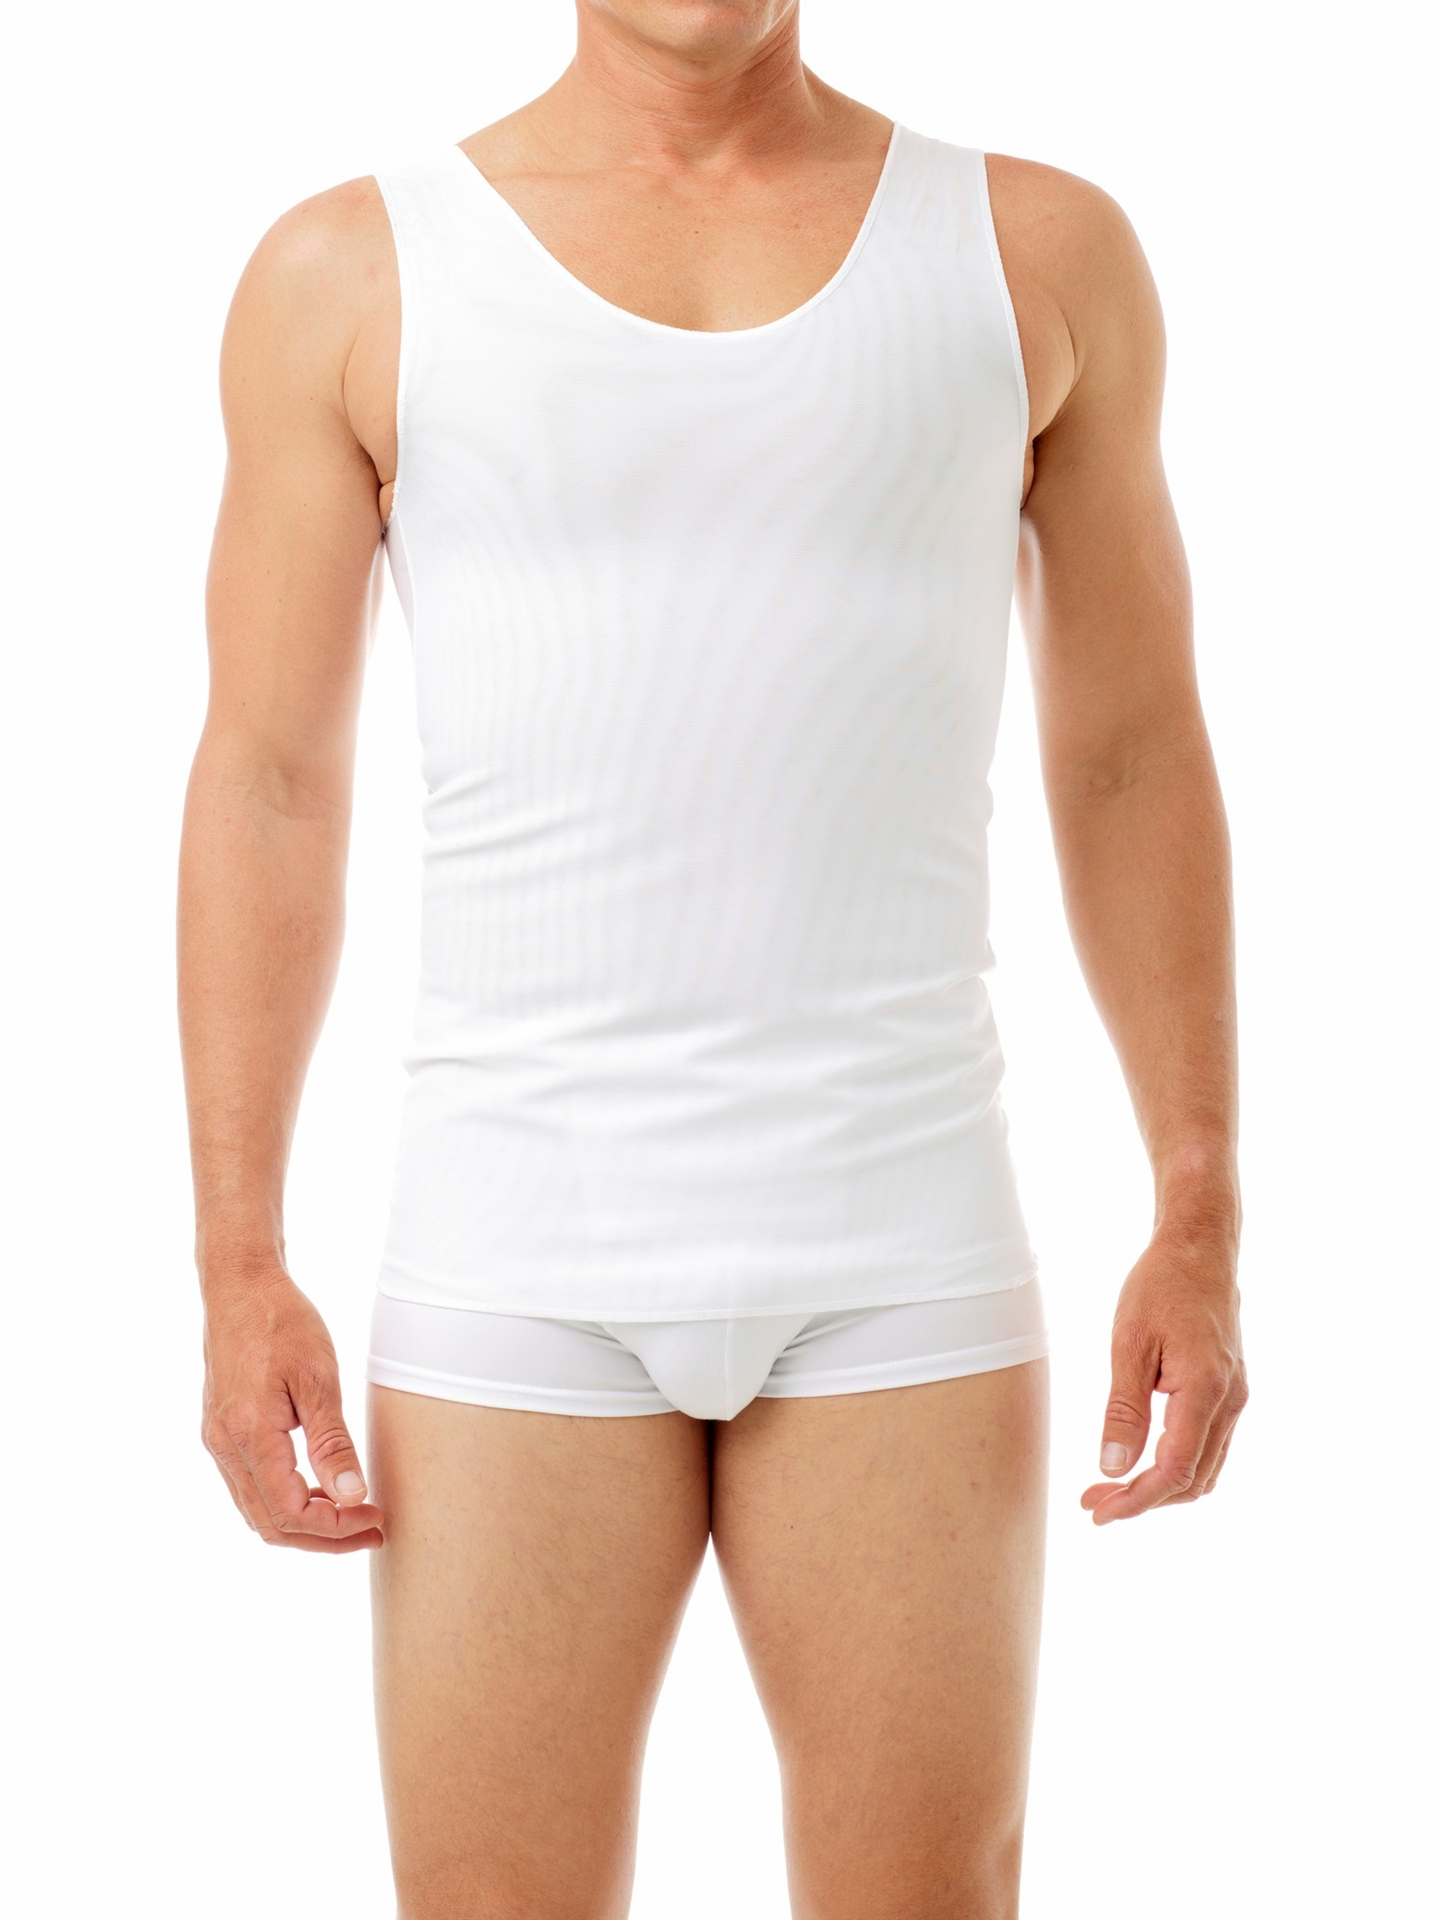 Picture of The Cotton Lined Power Chest Binder Tank